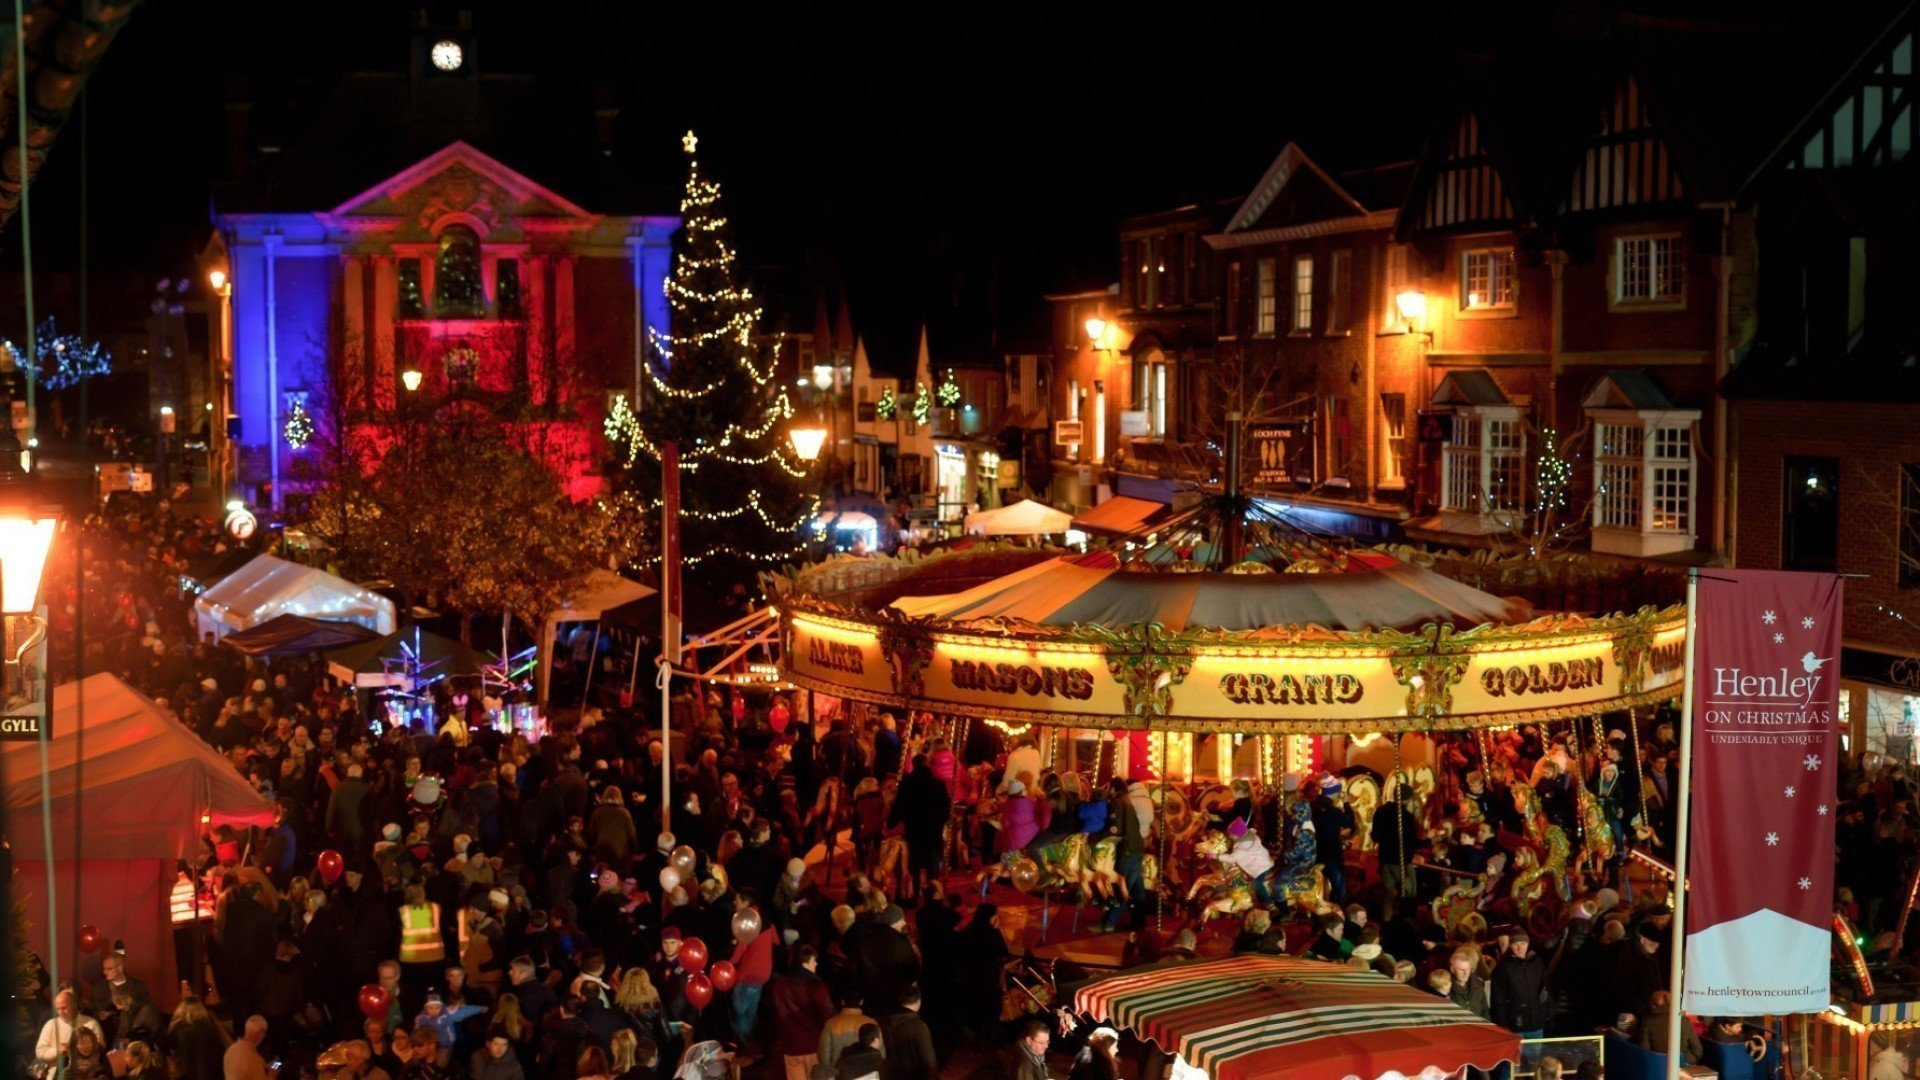 Henley Christmas Festival 2019 in Henley-on-Thames, Oxfordshire